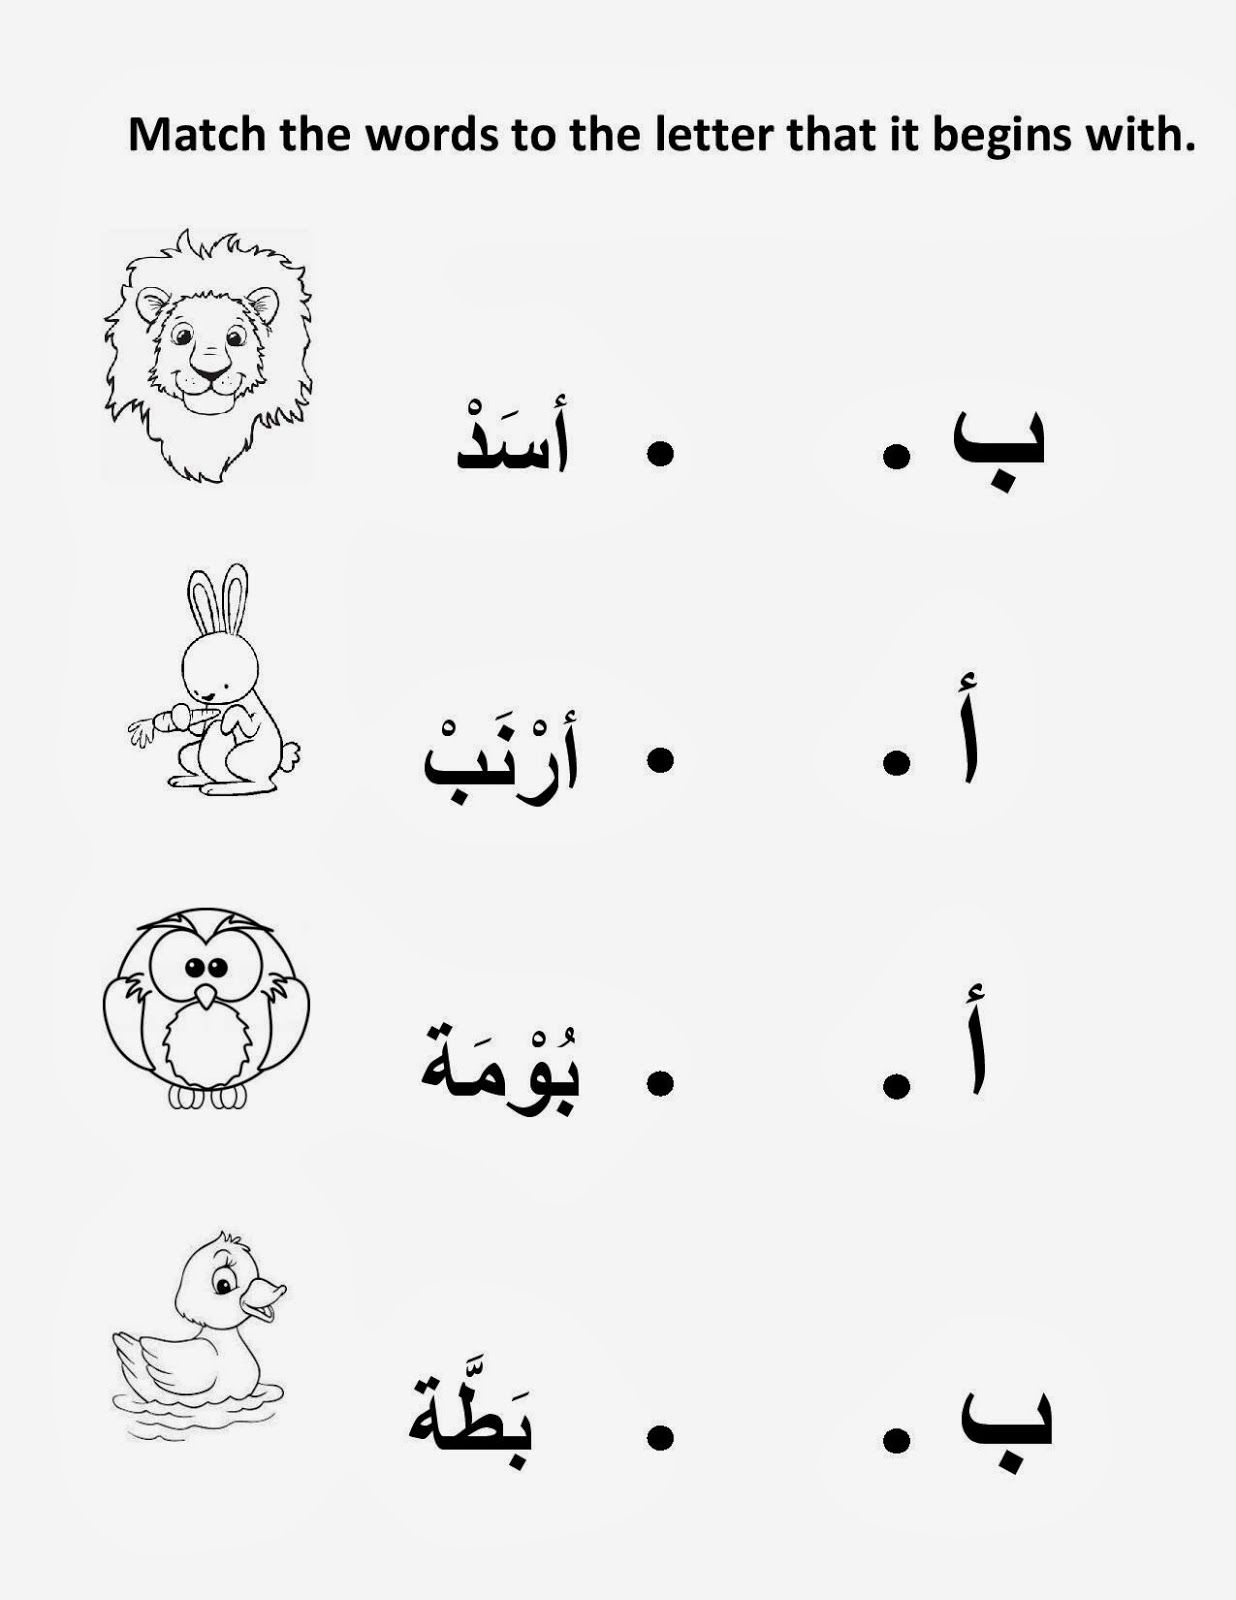 Arabic Letters Worksheet Preschool 1 236 1 600 Pixels